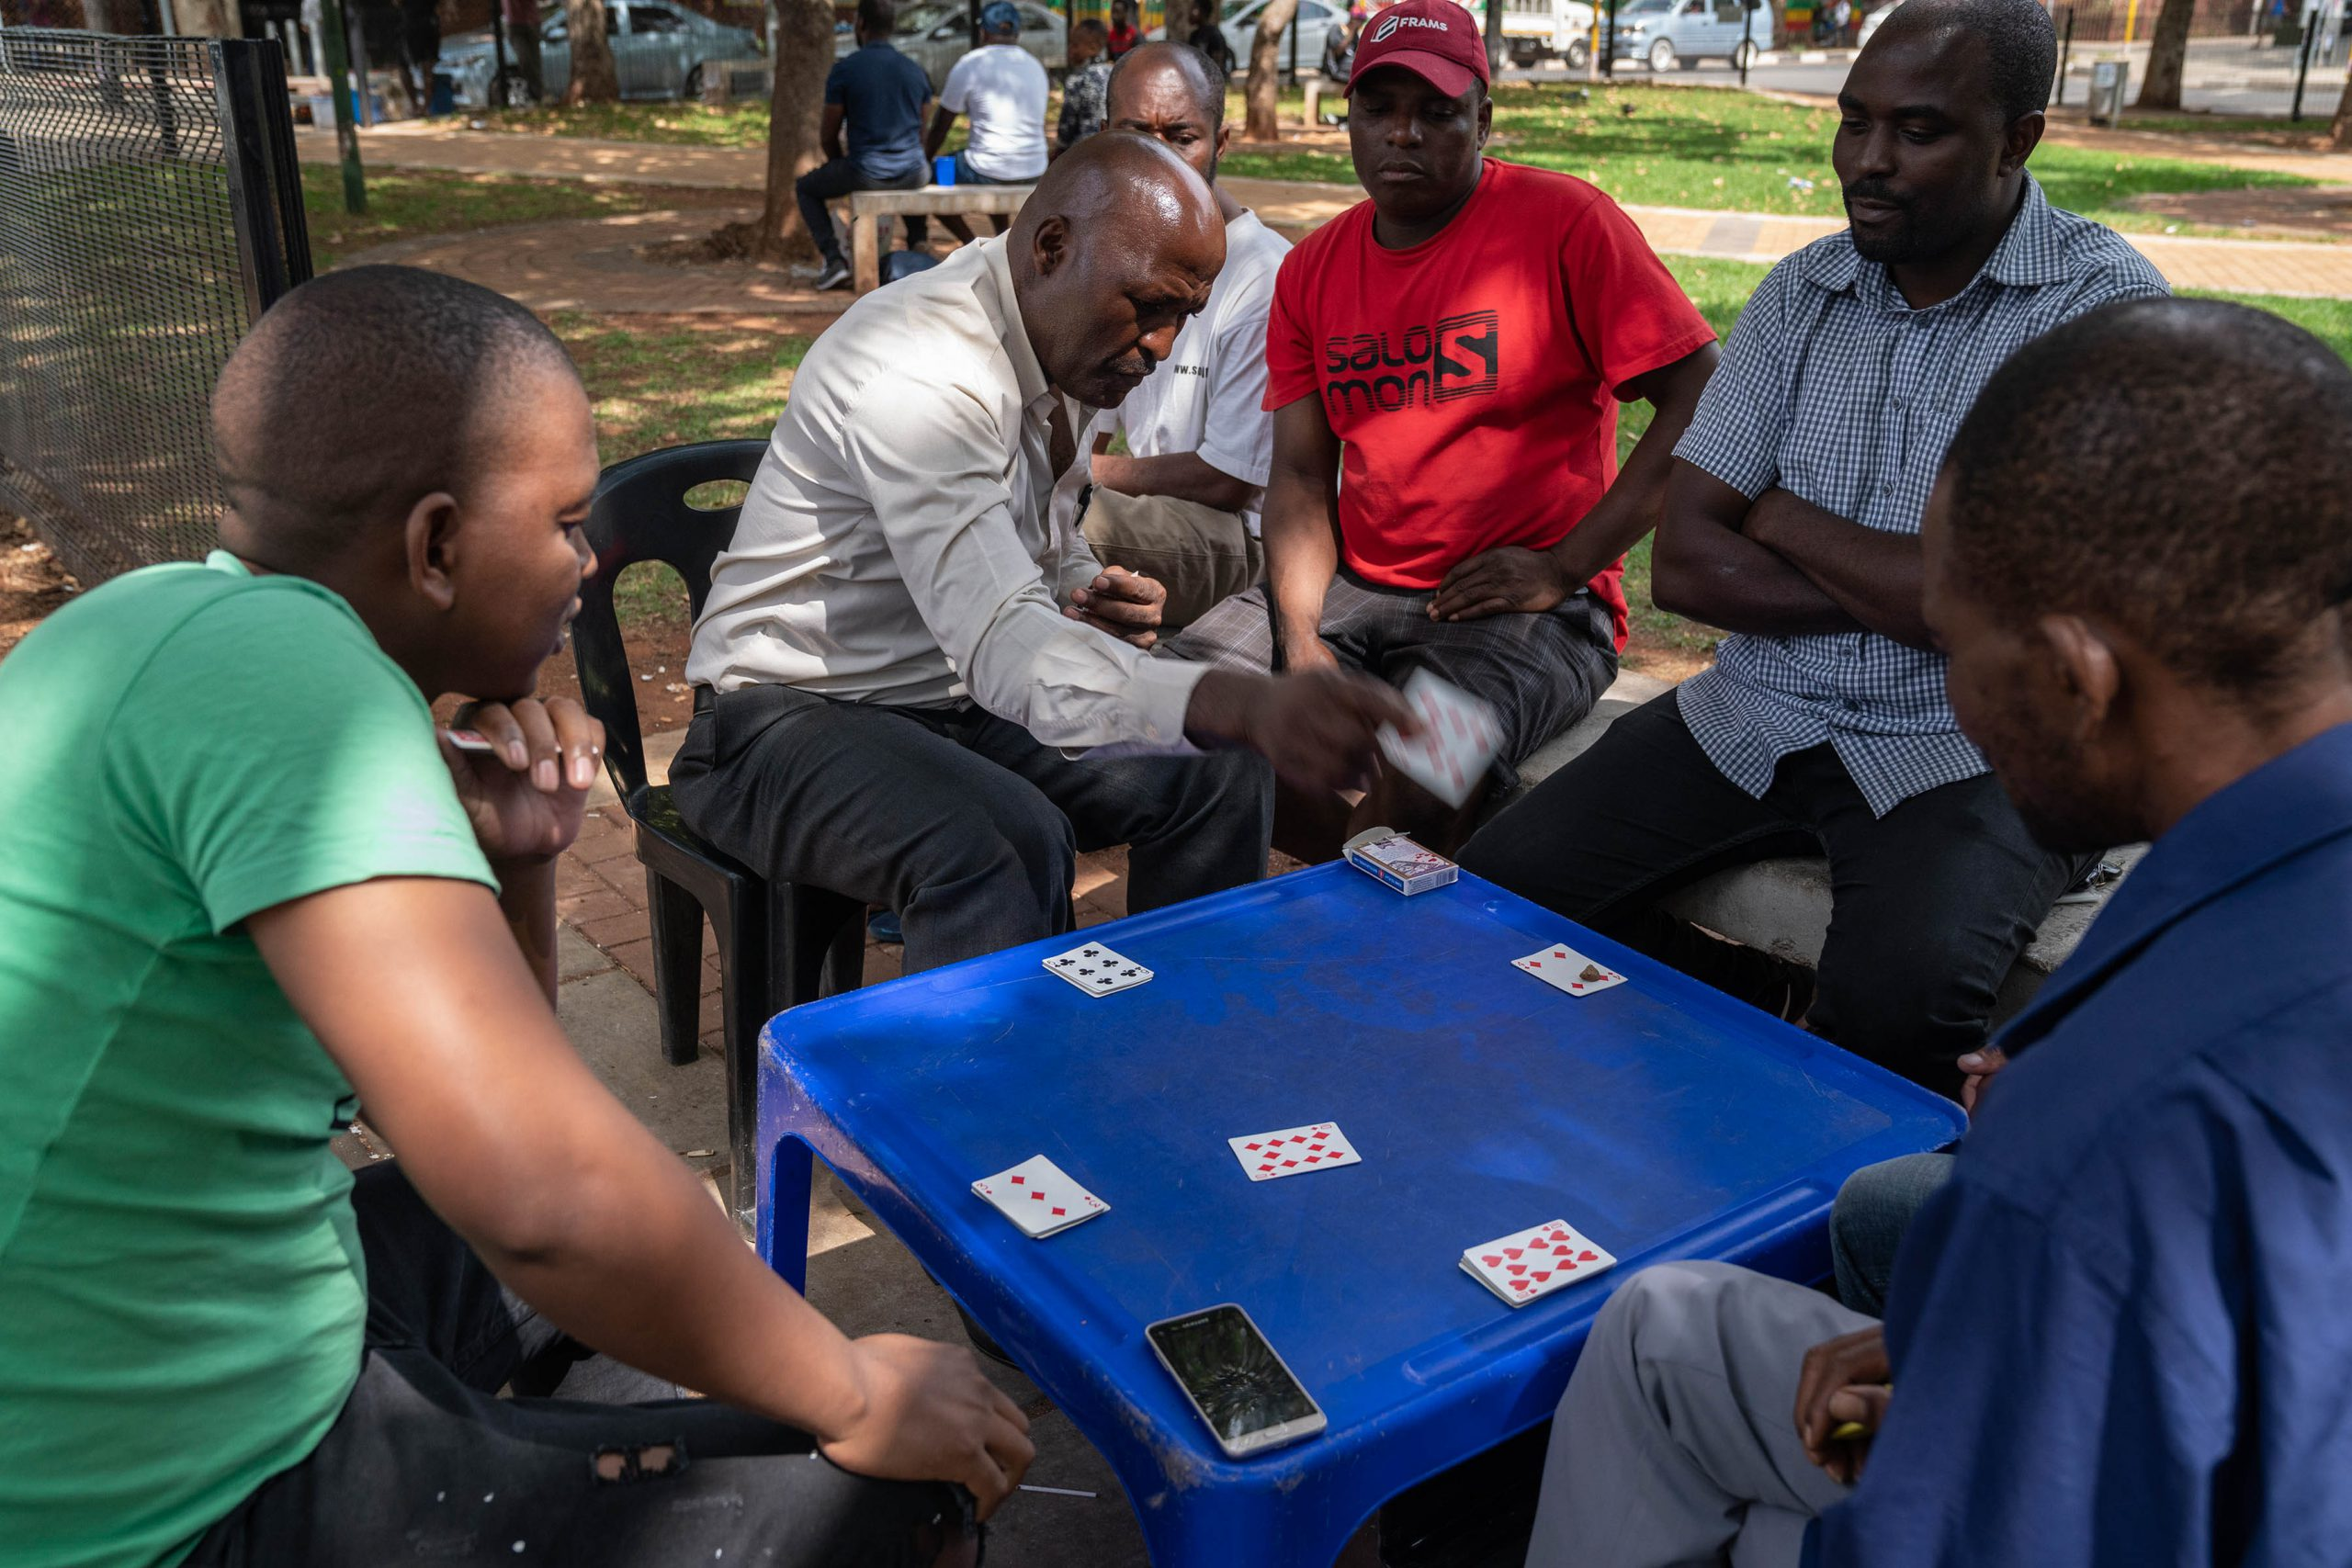 15 January 2020: Fans of the card game Casino pit their wits against each other at Barnato Park.